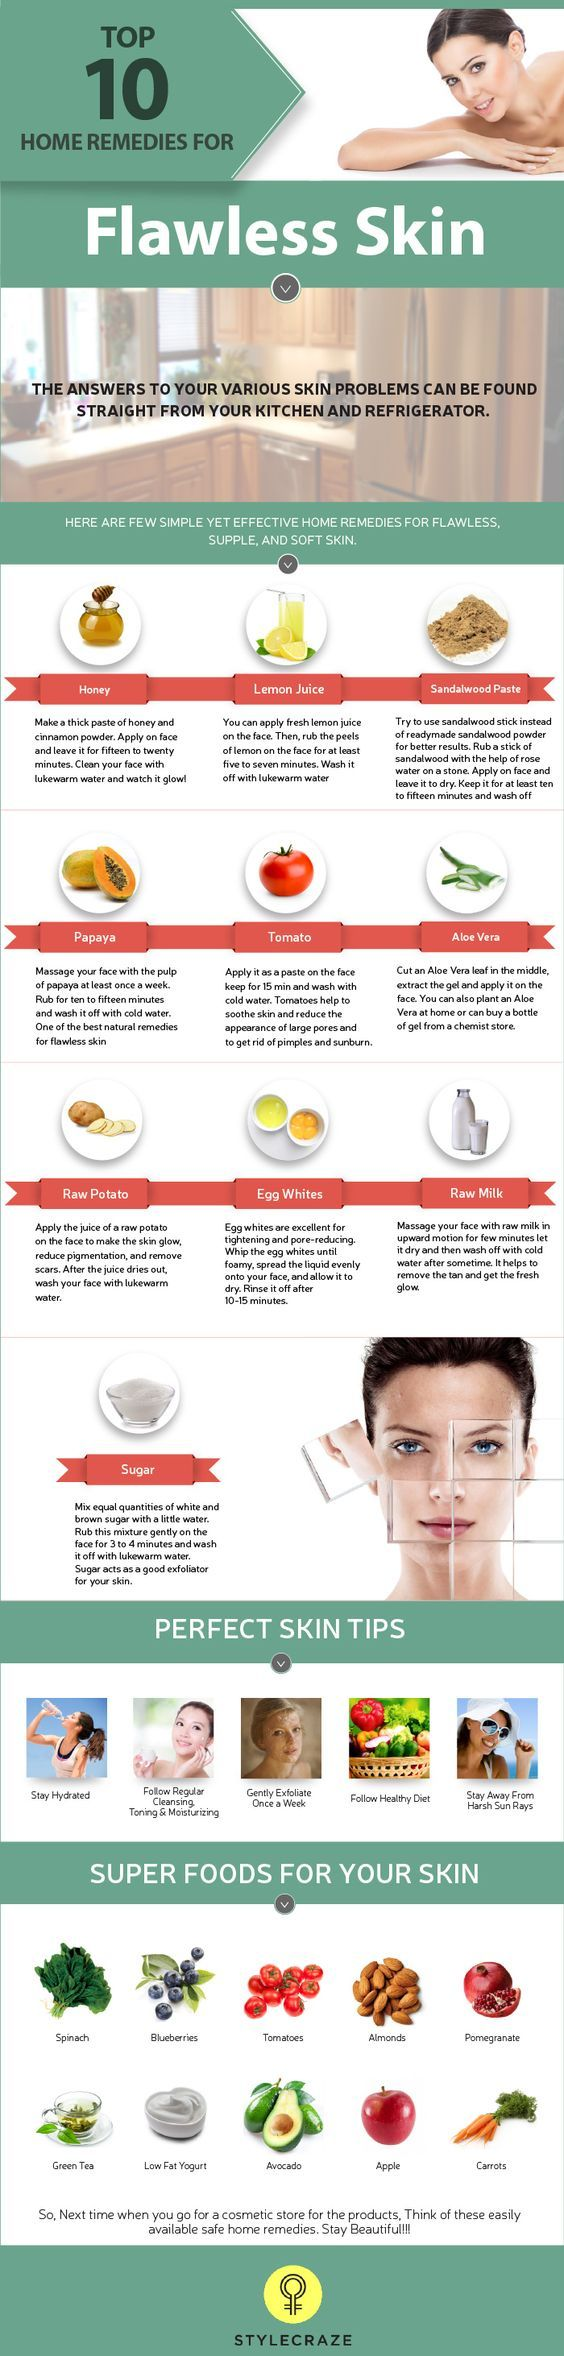 How To Get Flawless Skin – 12 Home Remedies in 1212  Flawless